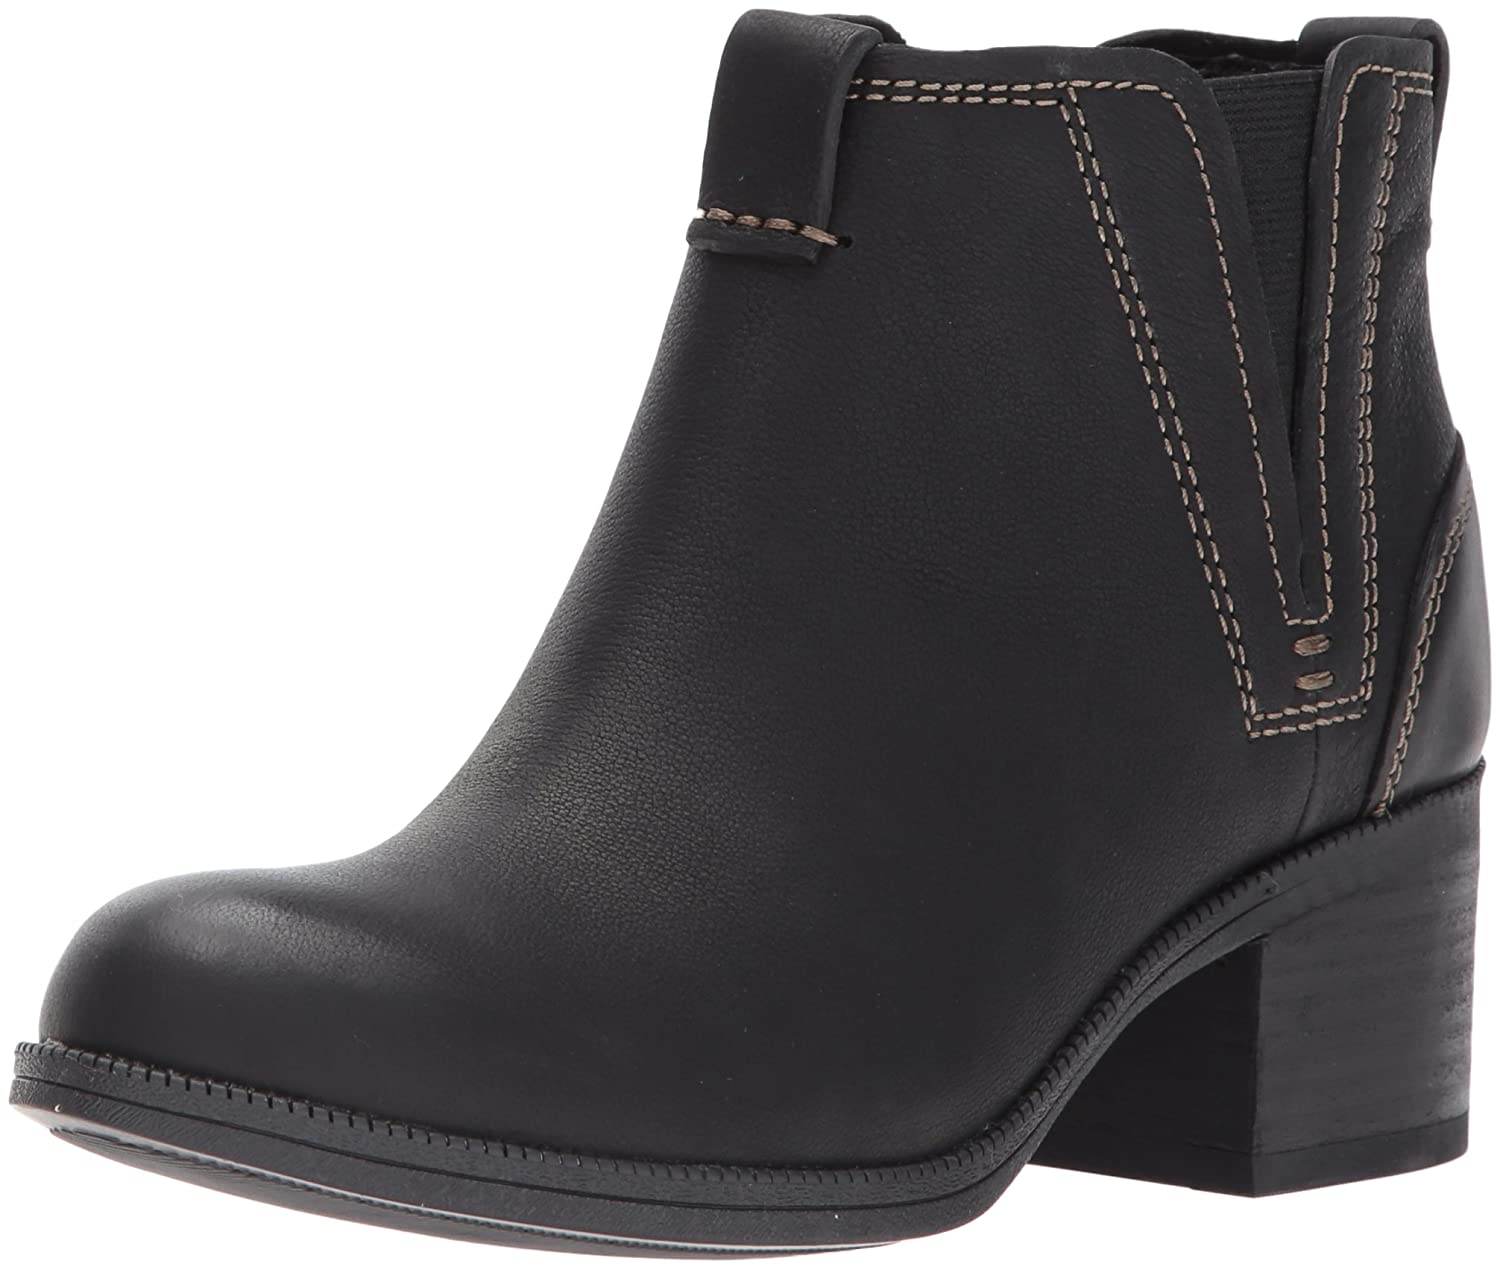 CLARKS Women's Maypearl Daisy Ankle Bootie B01NCOBHNE 5 B(M) US|Black